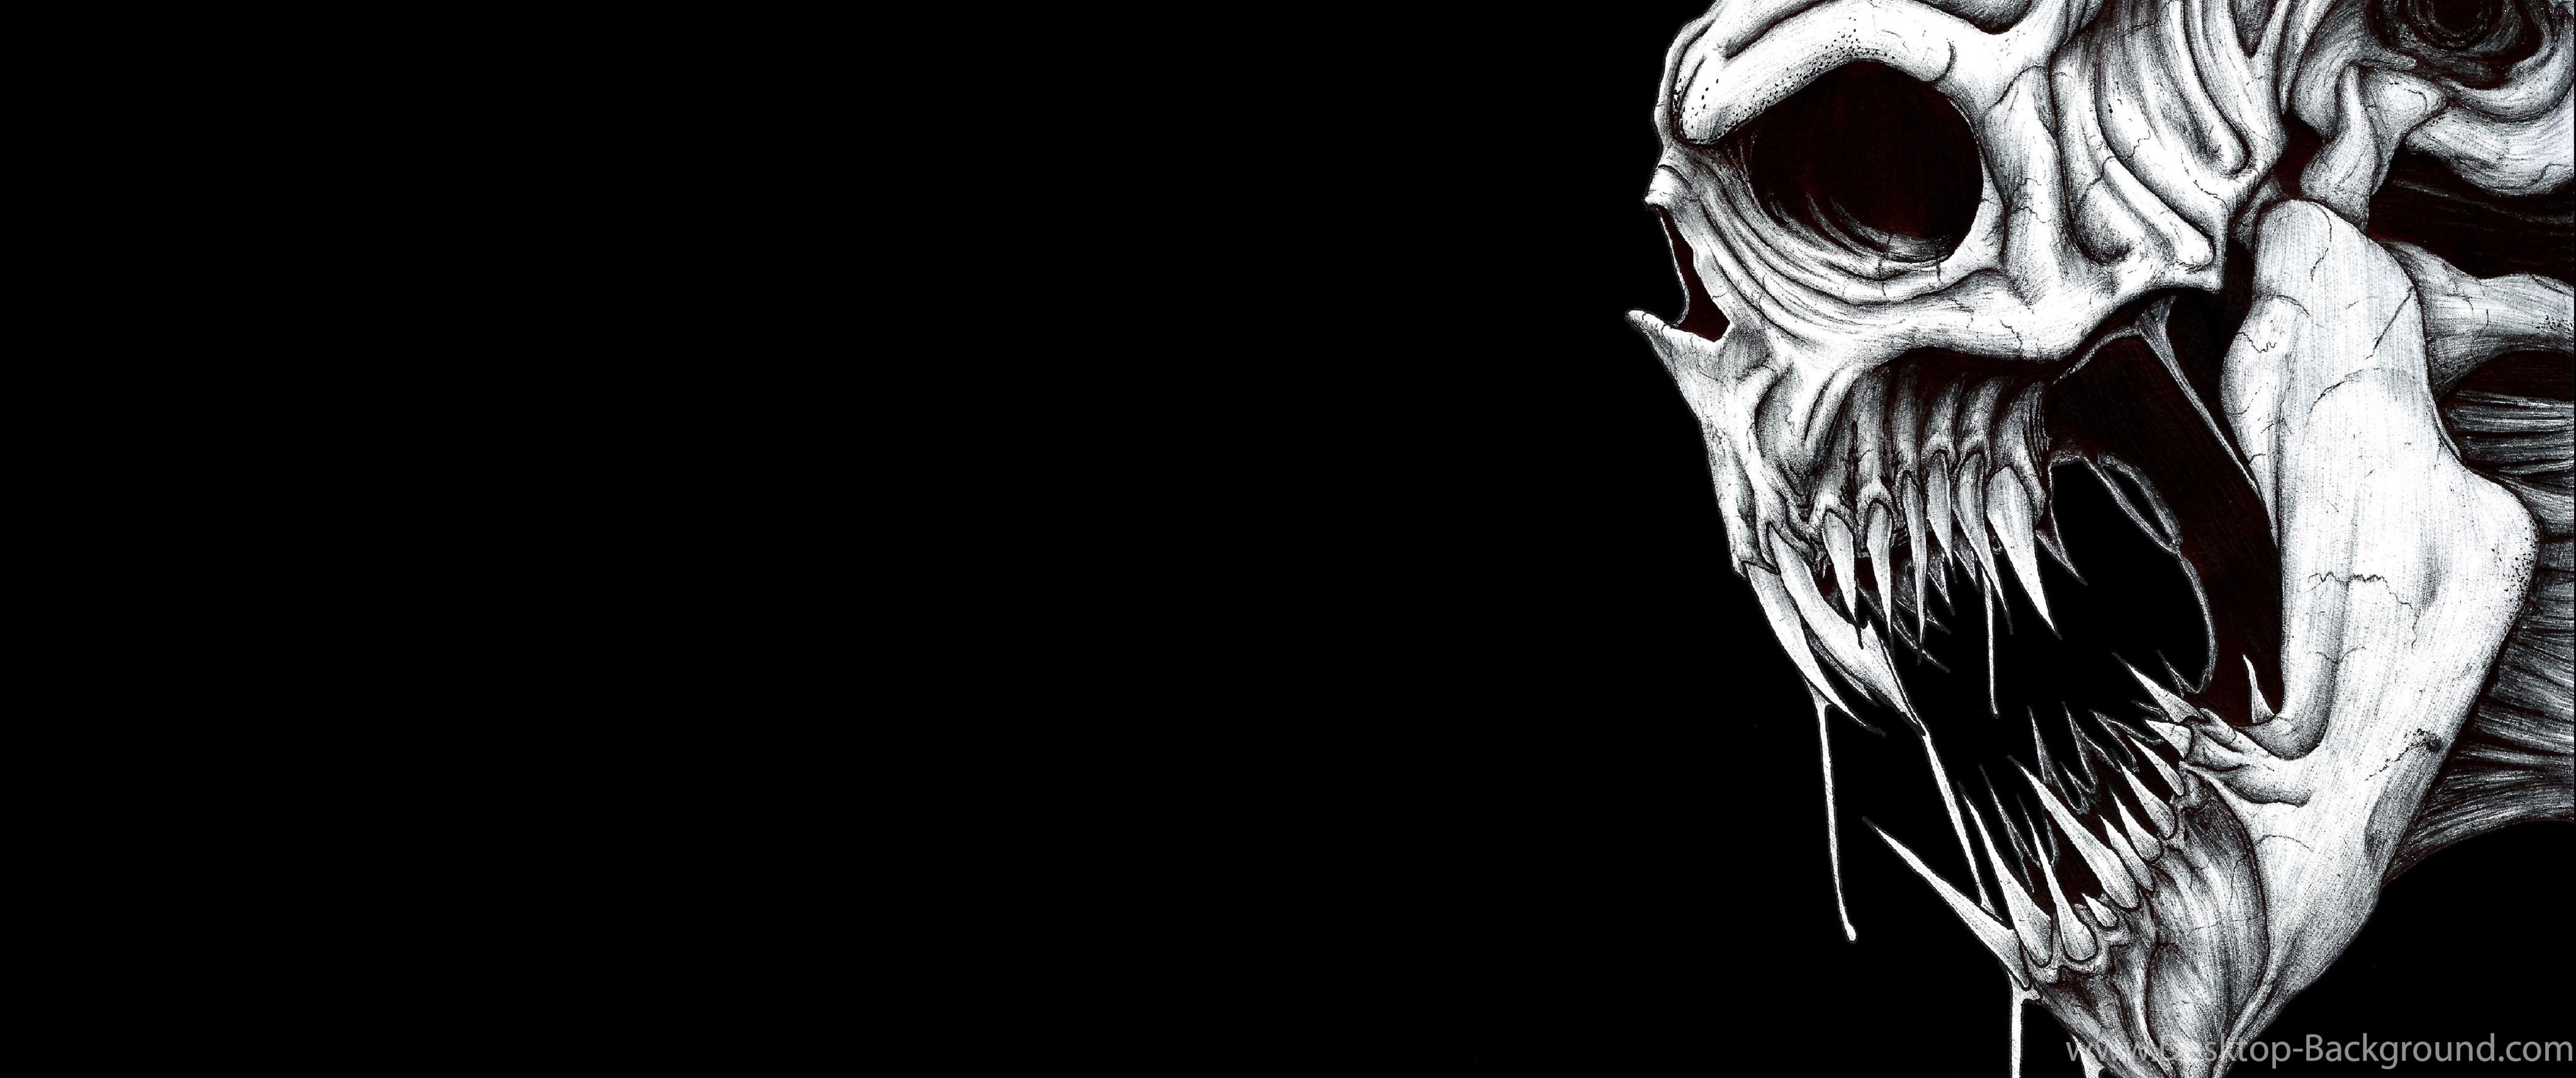 Skull Wallpapers Image 14530 HD Wallpapers Site Desktop Backgrounds